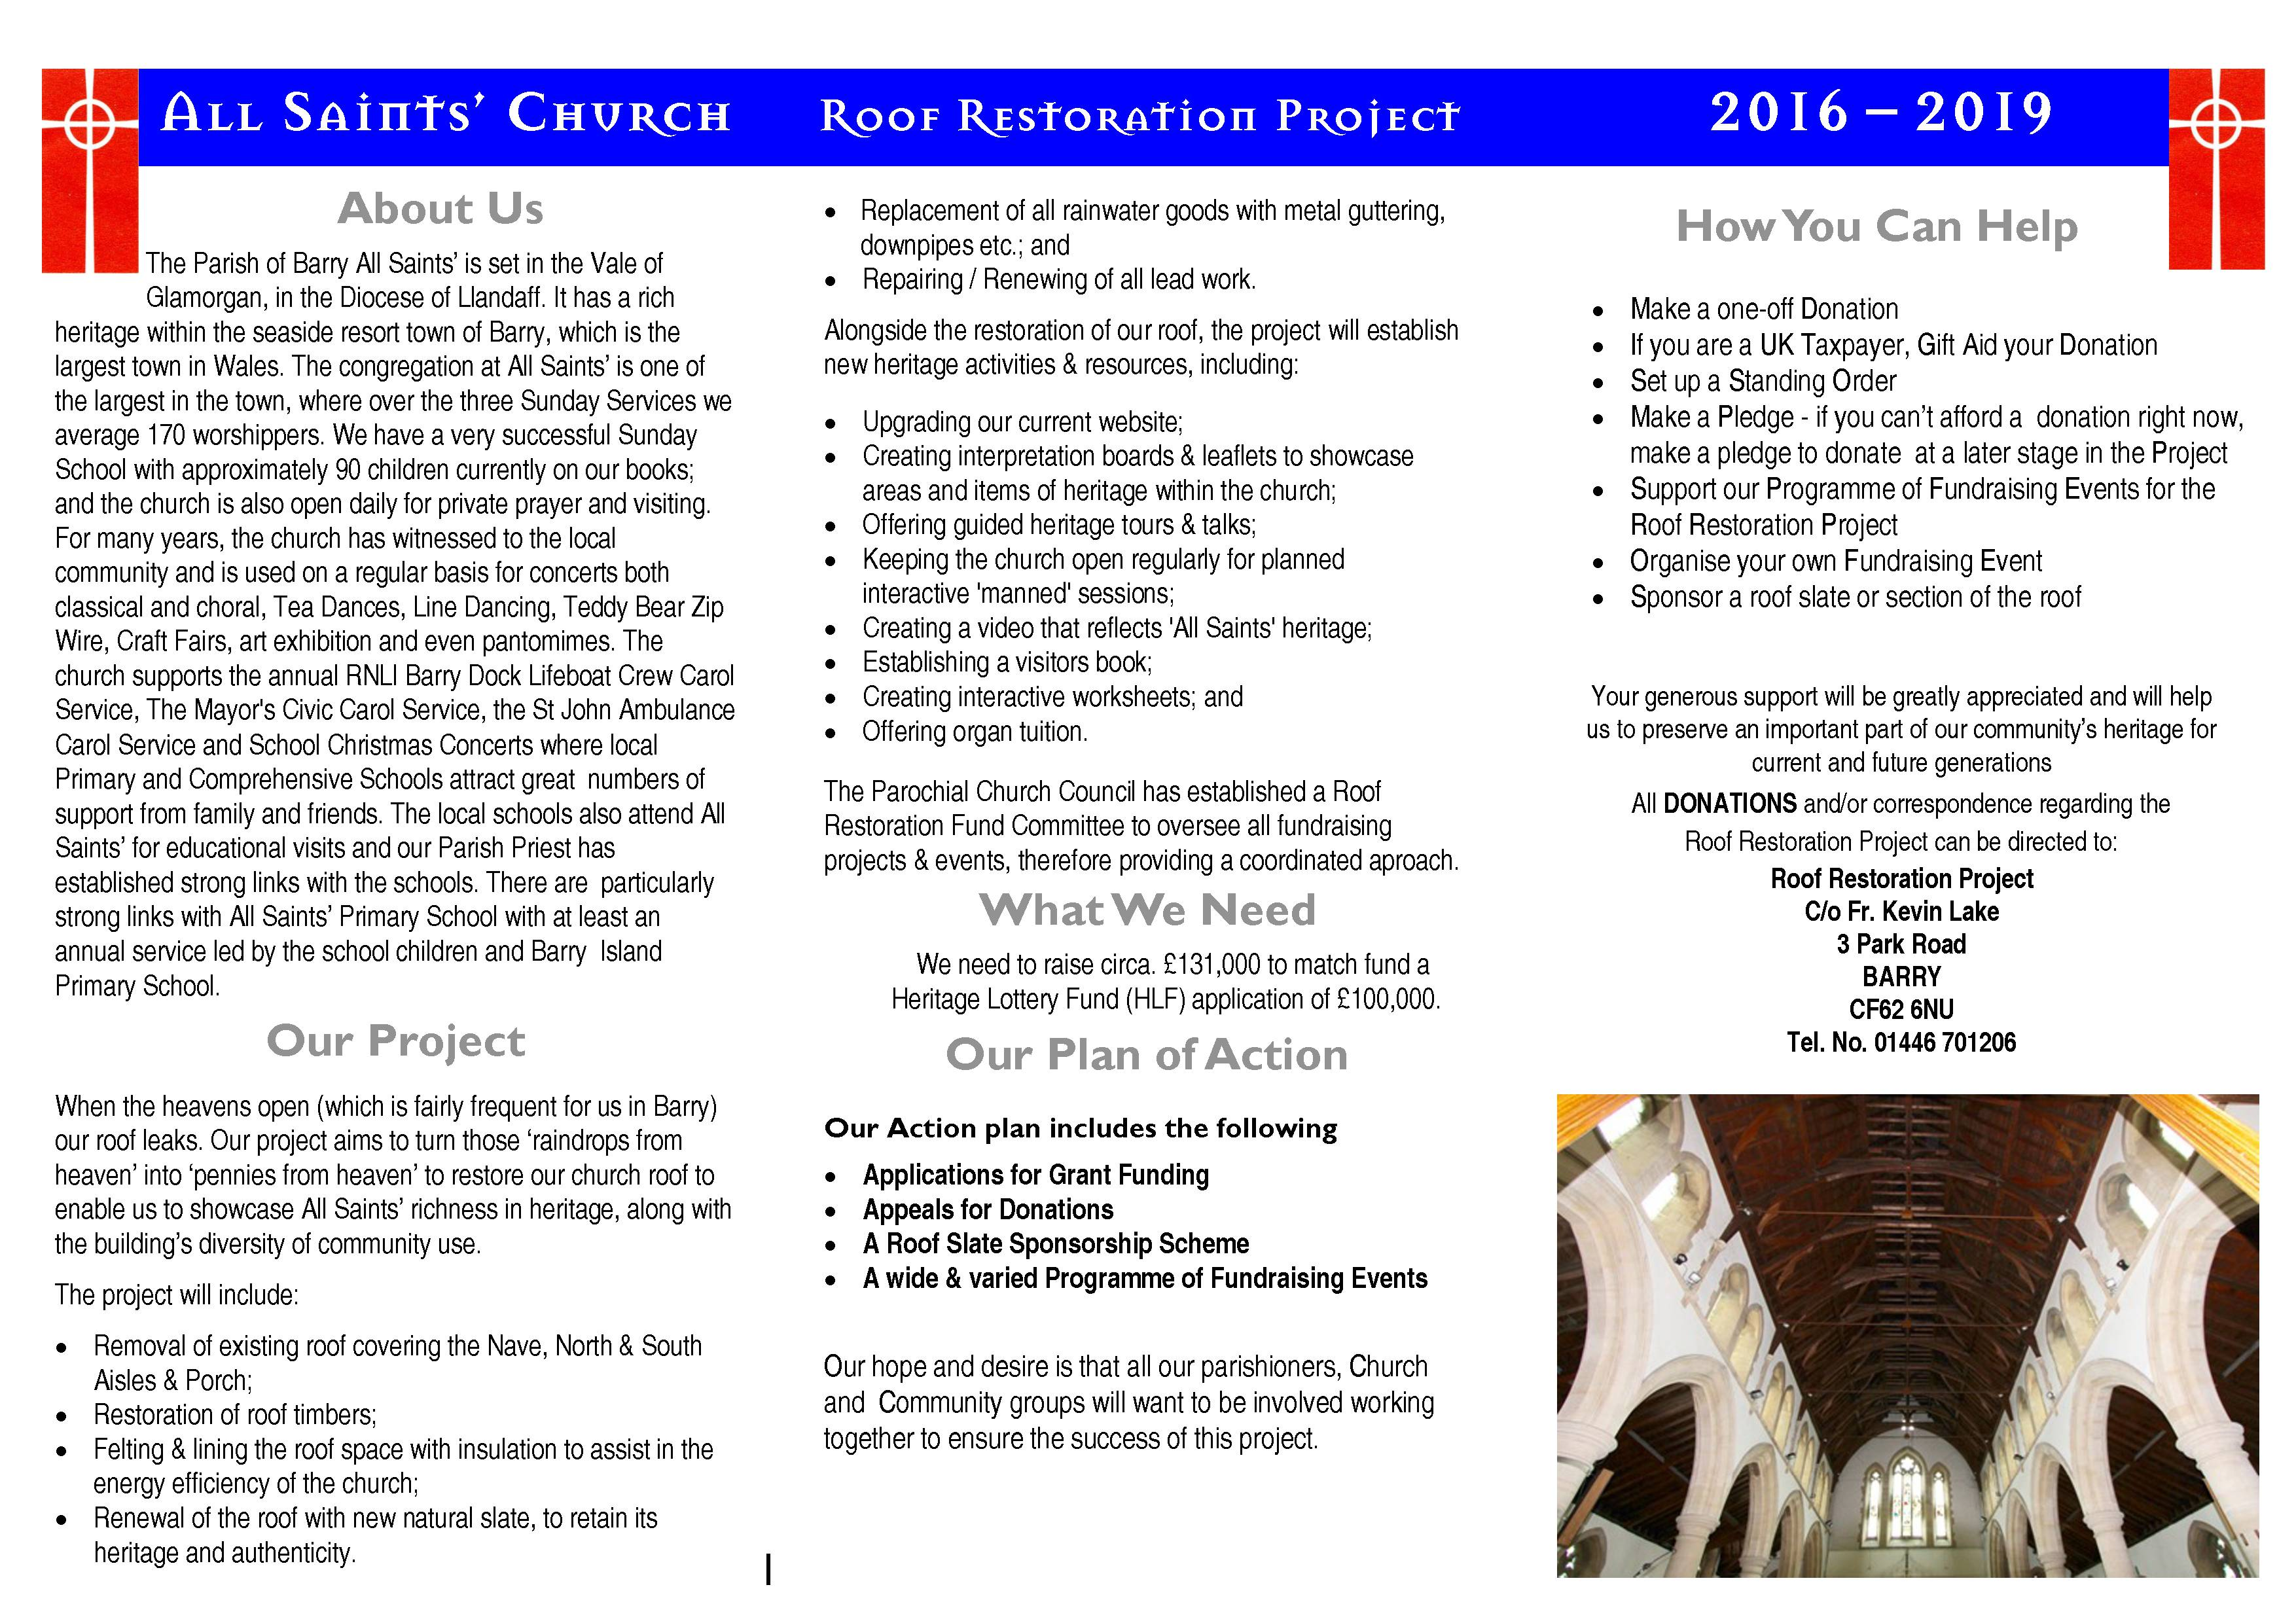 Roof fund page 2